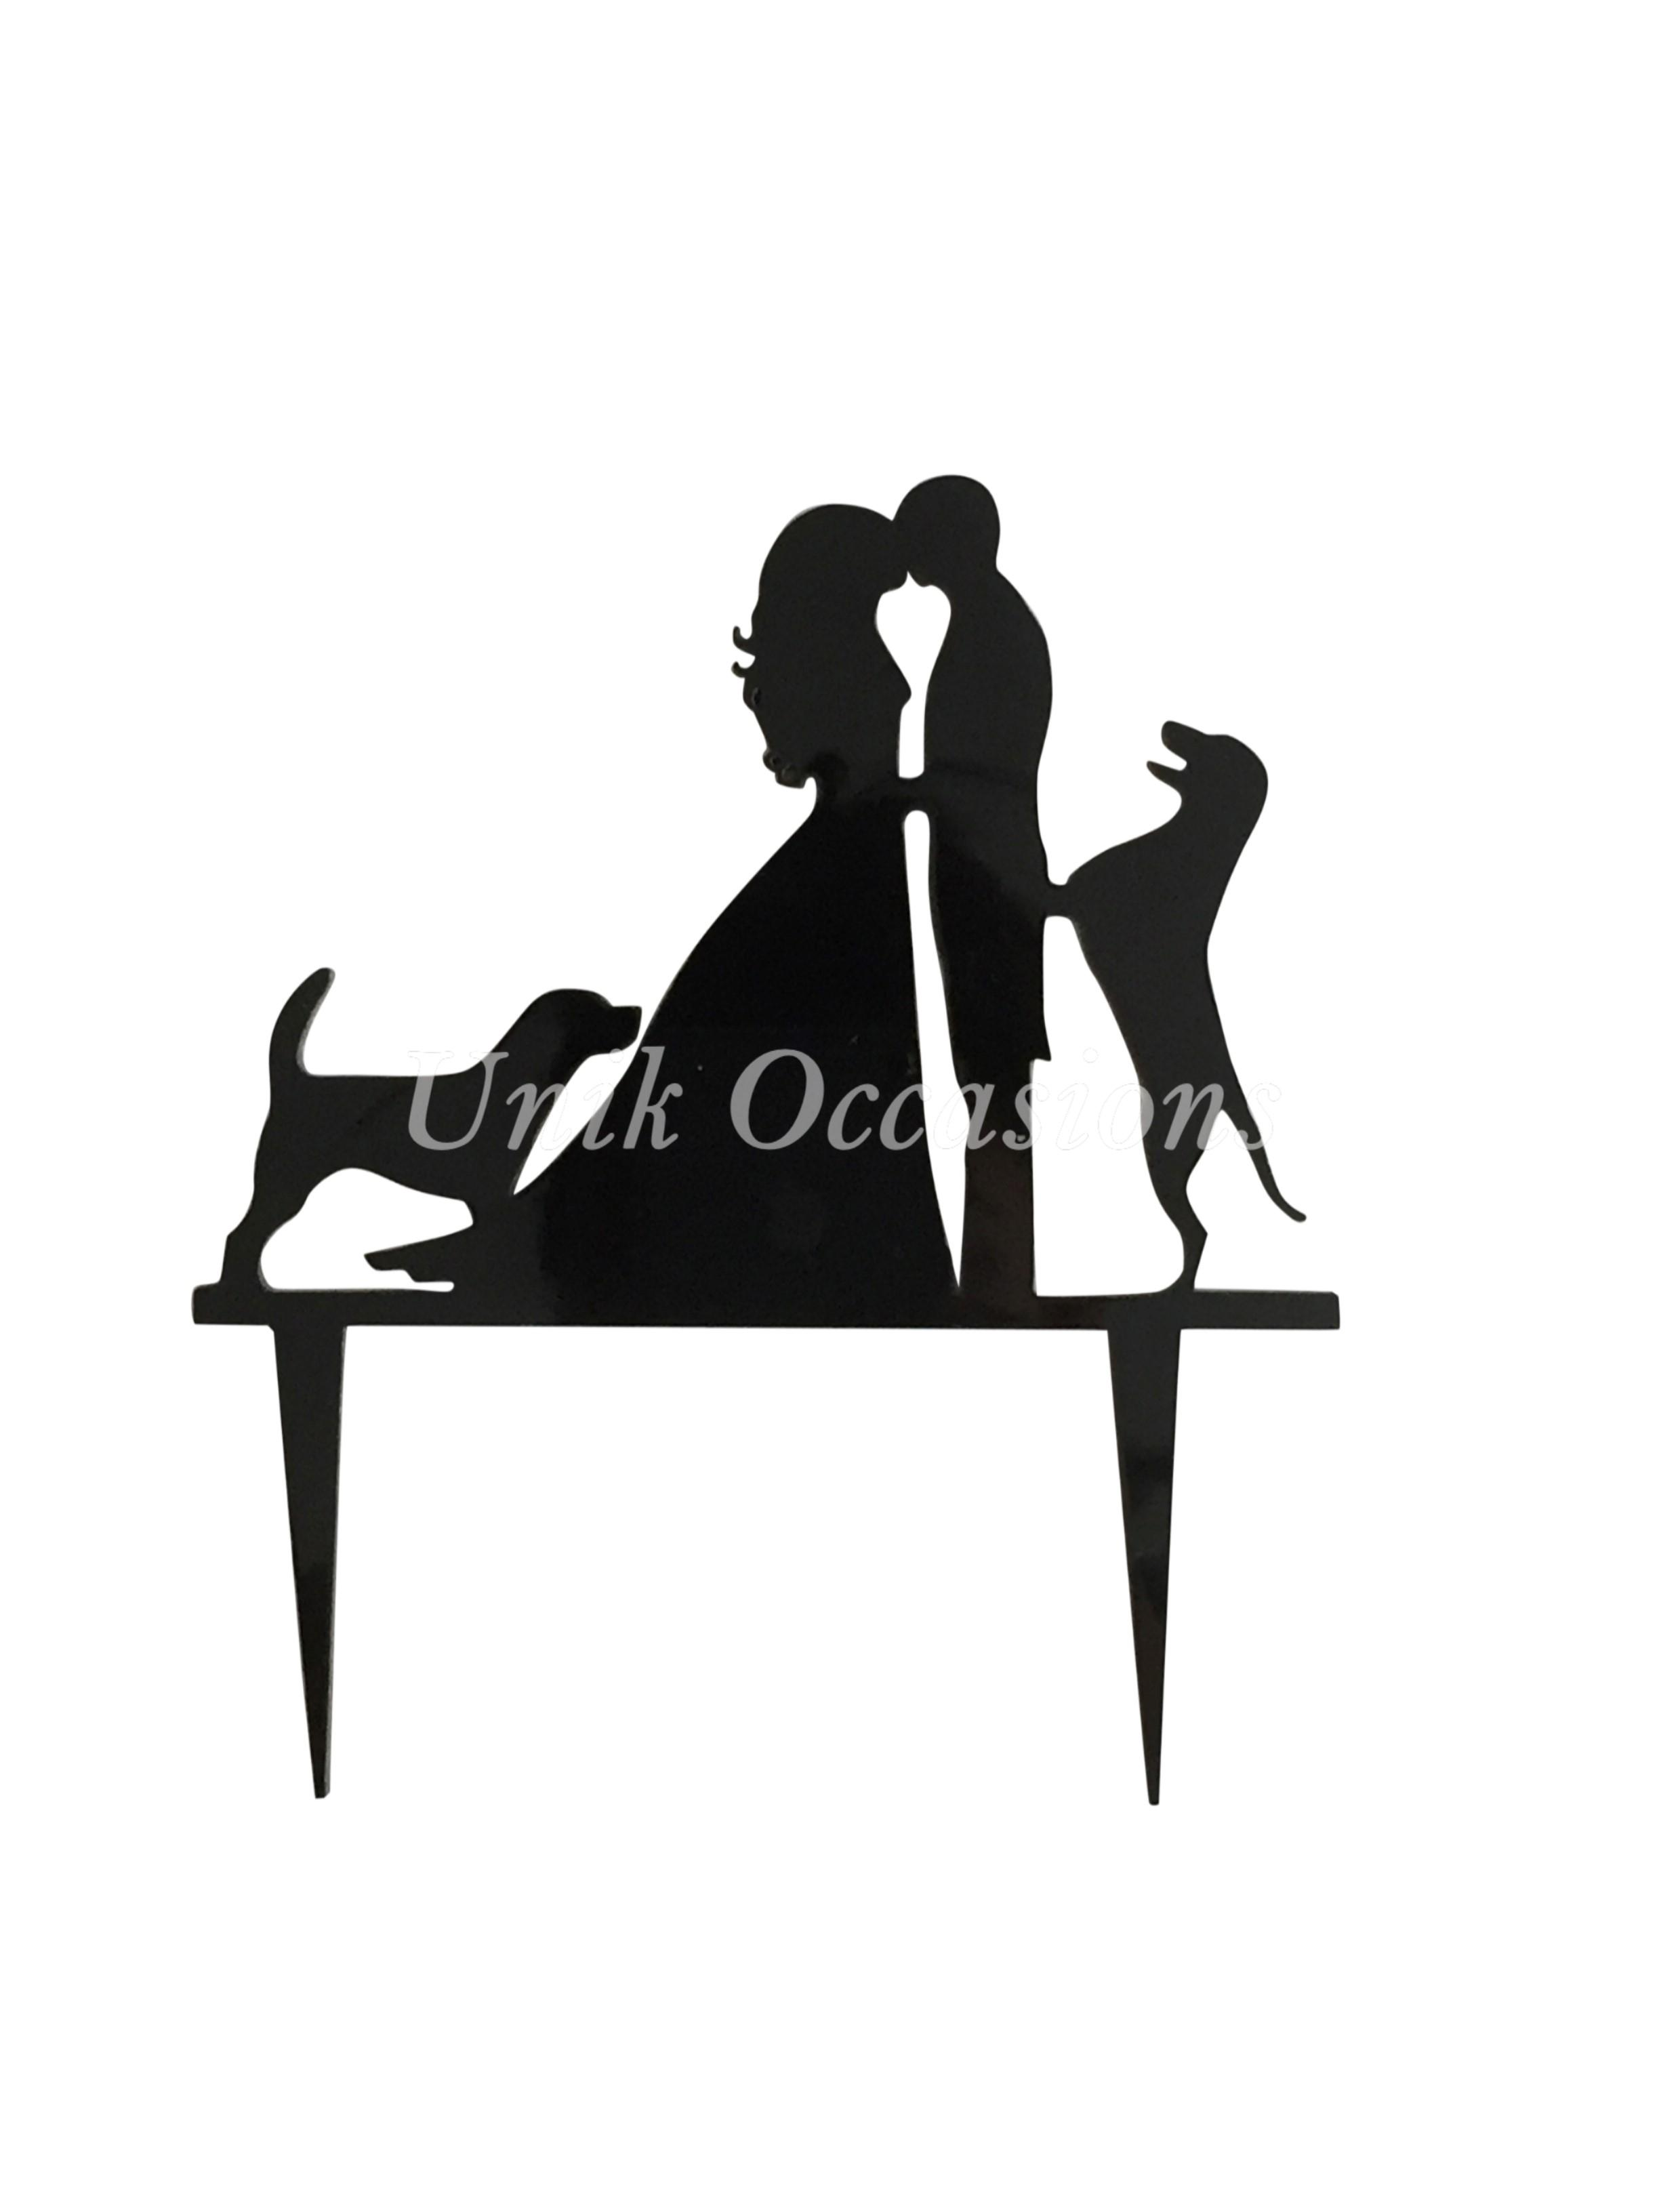 2448x3264 Black Unik Occasions Bride Groom And Two Dogs Silhouette Cake